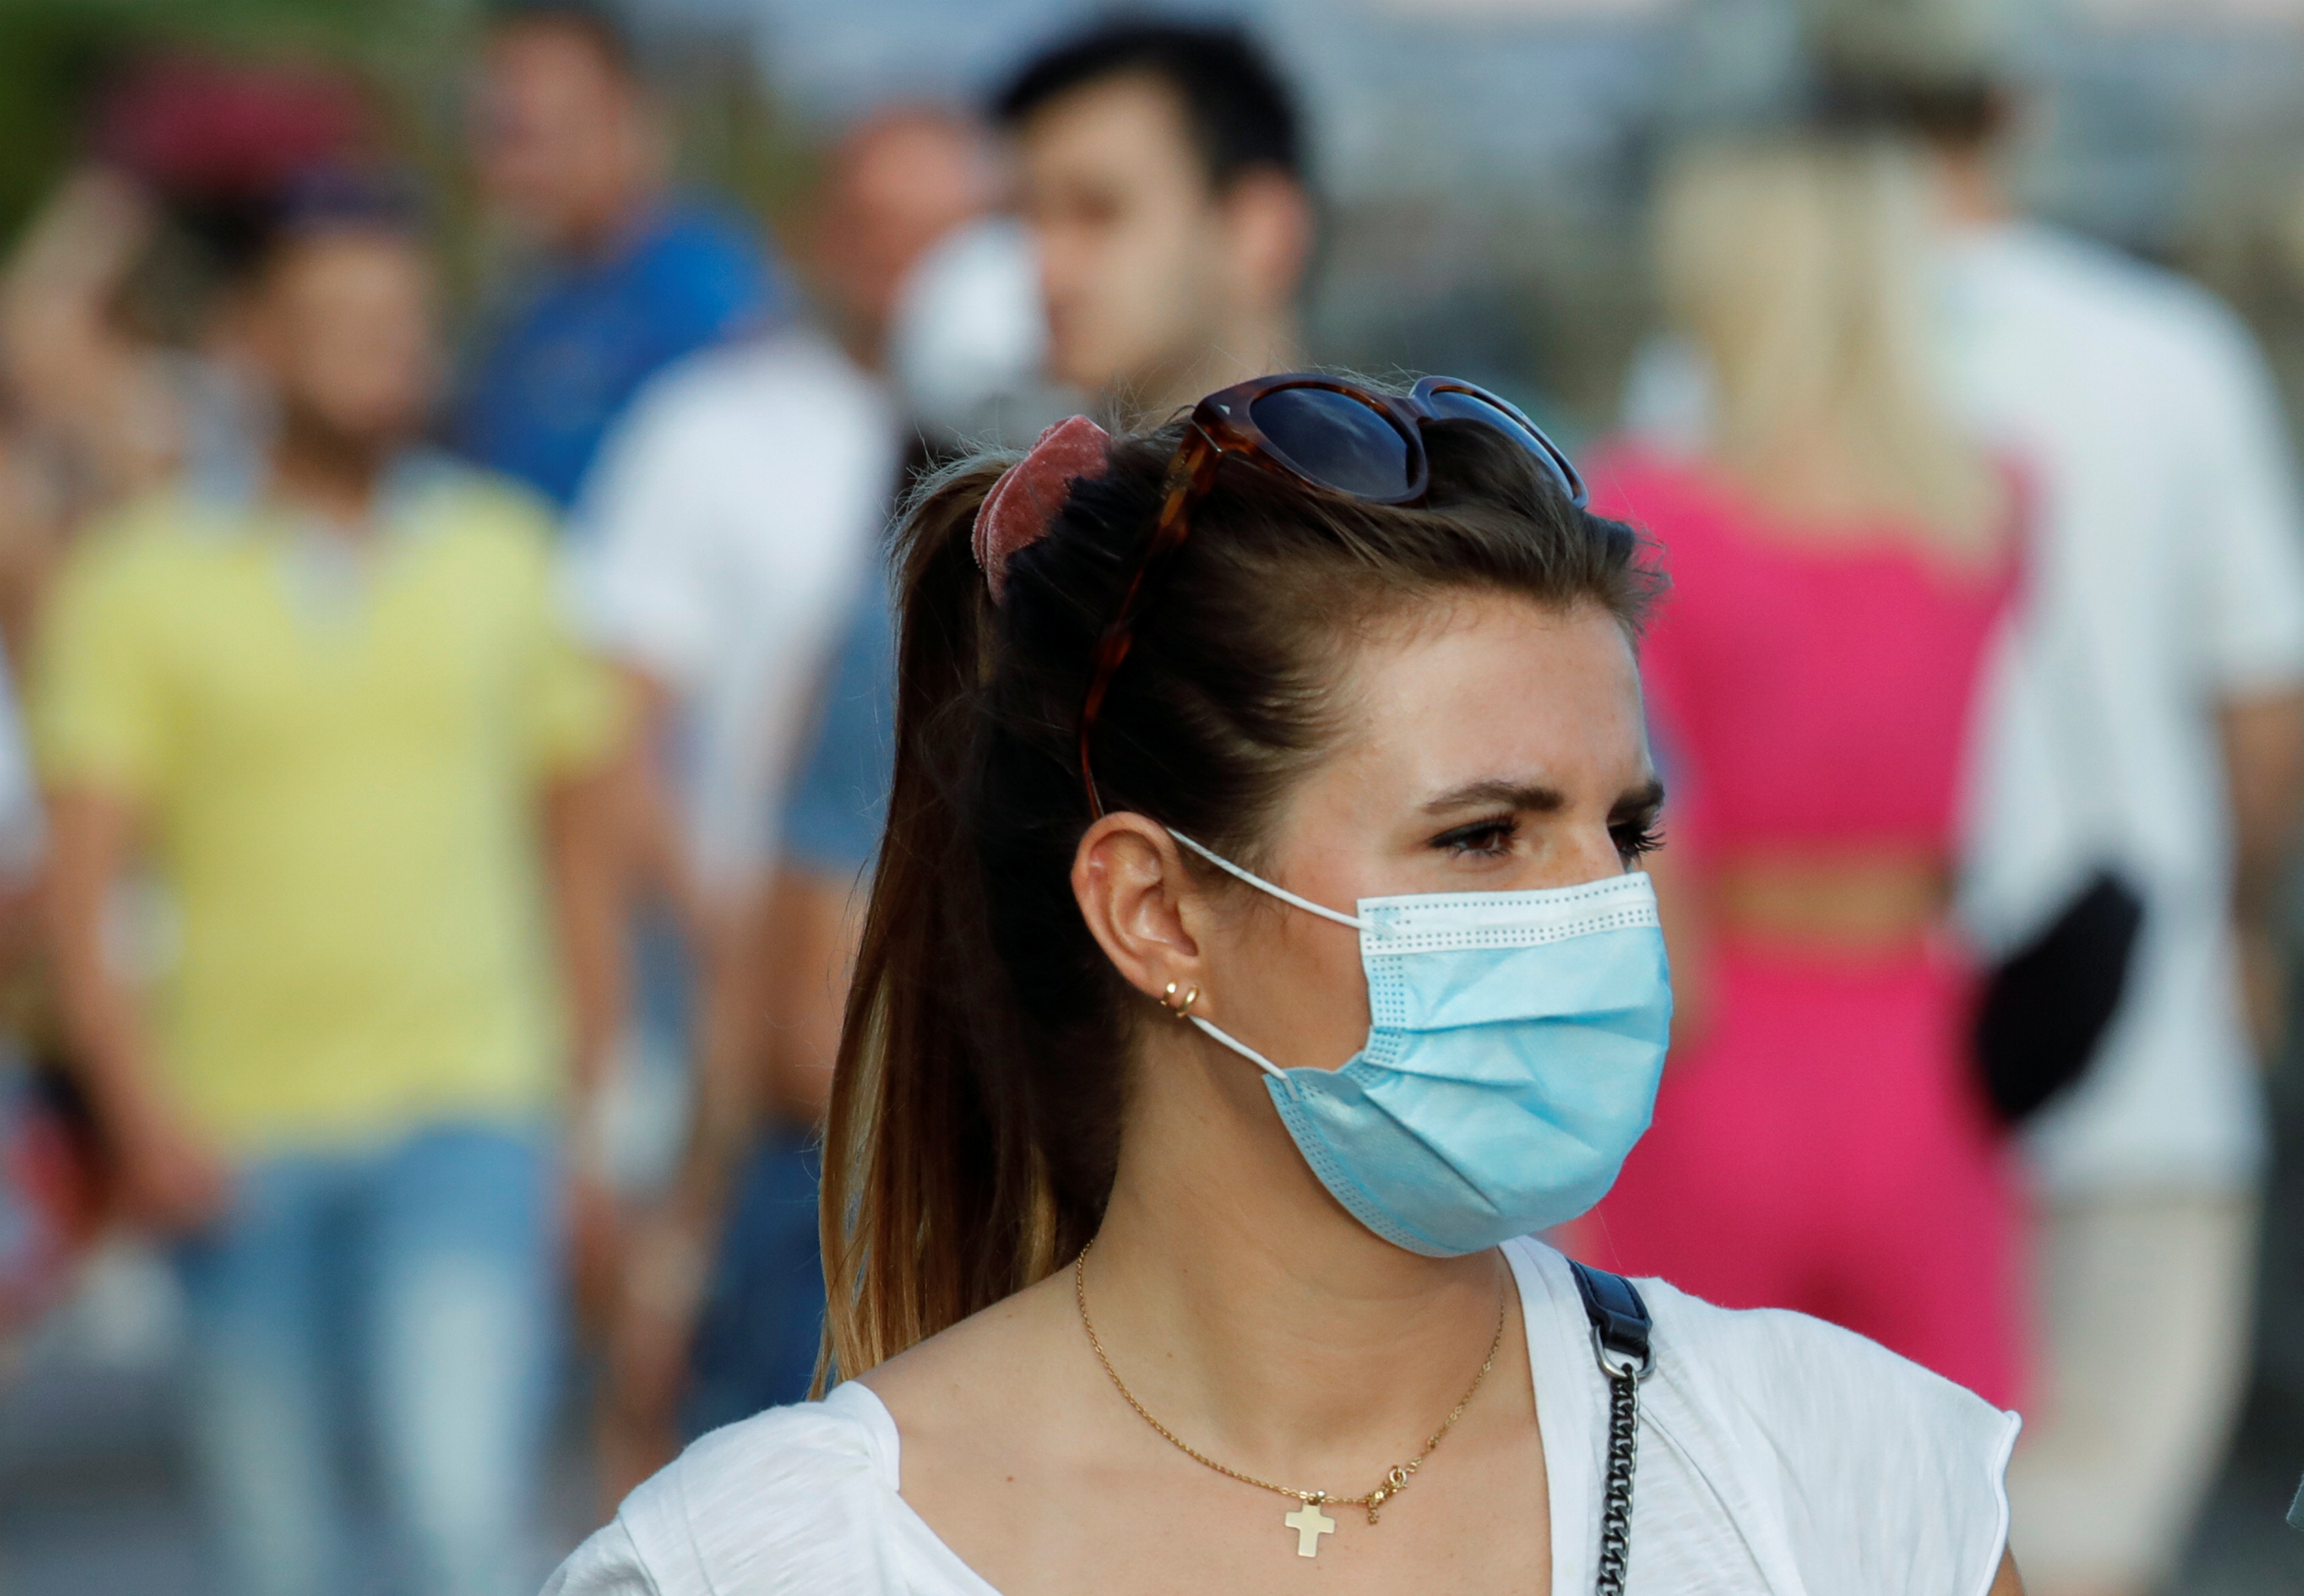 A woman wears a mask as she walks on the street following a government decree that face coverings must be worn between 6 p.m. and 6 a.m. in areas close to bars and pubs and where gatherings are more likely, due to the coronavirus disease (COVID-19) outbreak, in Naples, Italy August 17, 2020. REUTERS/Ciro De Luca